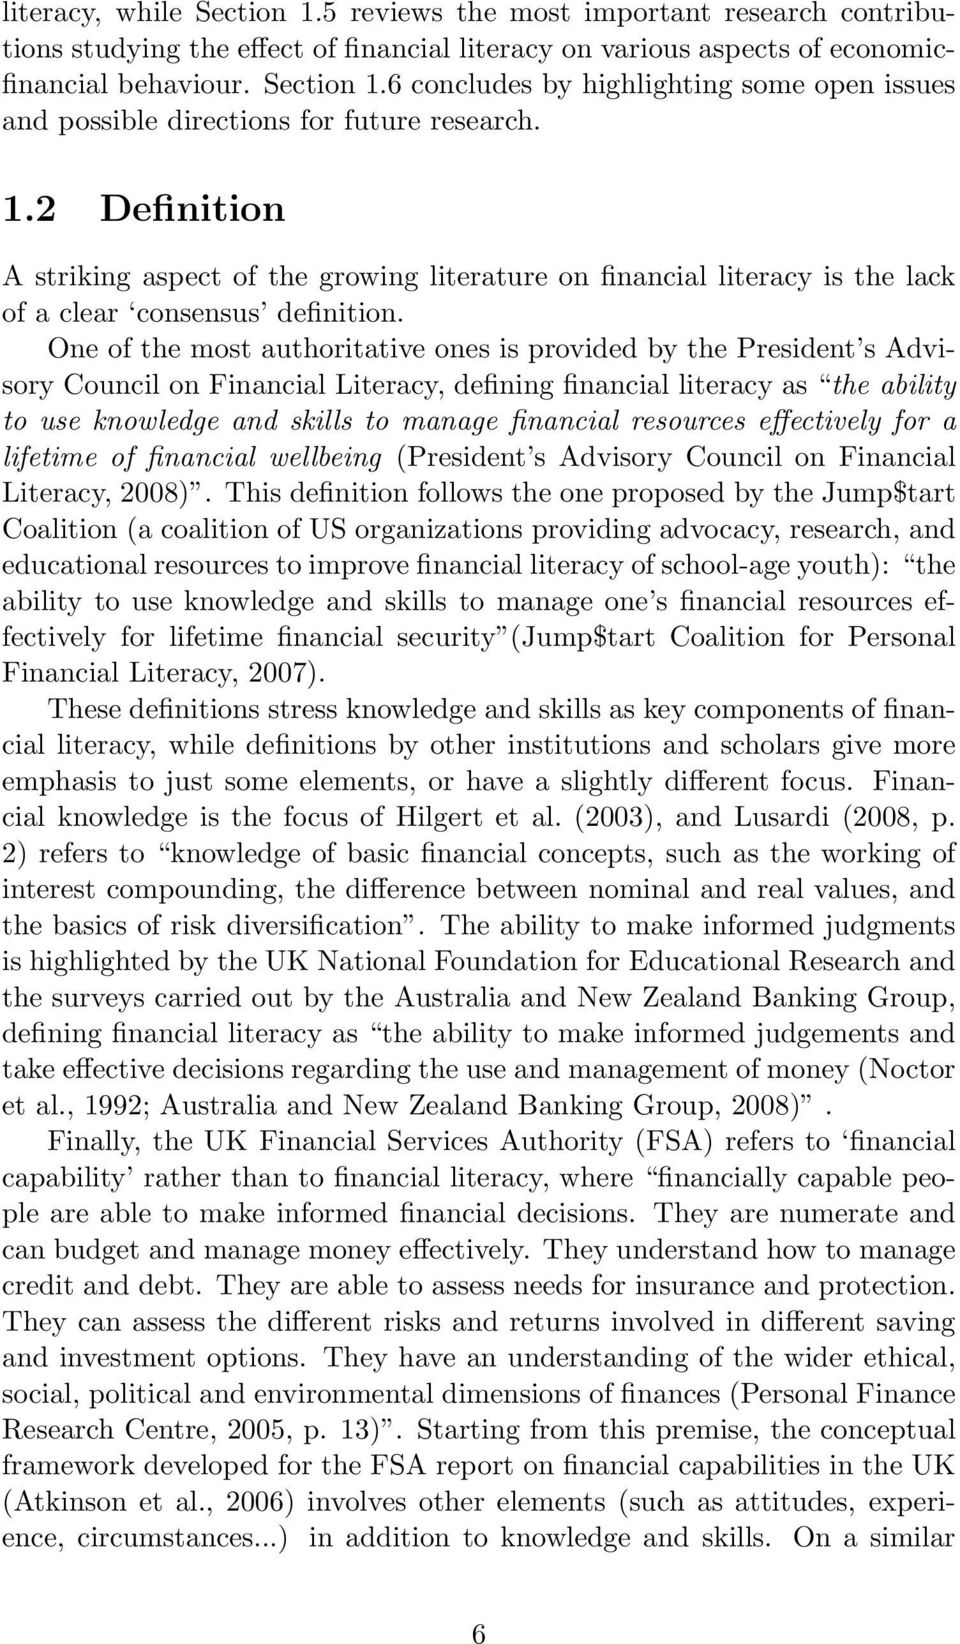 chiara monticone financial literacy and financial advice. theory and